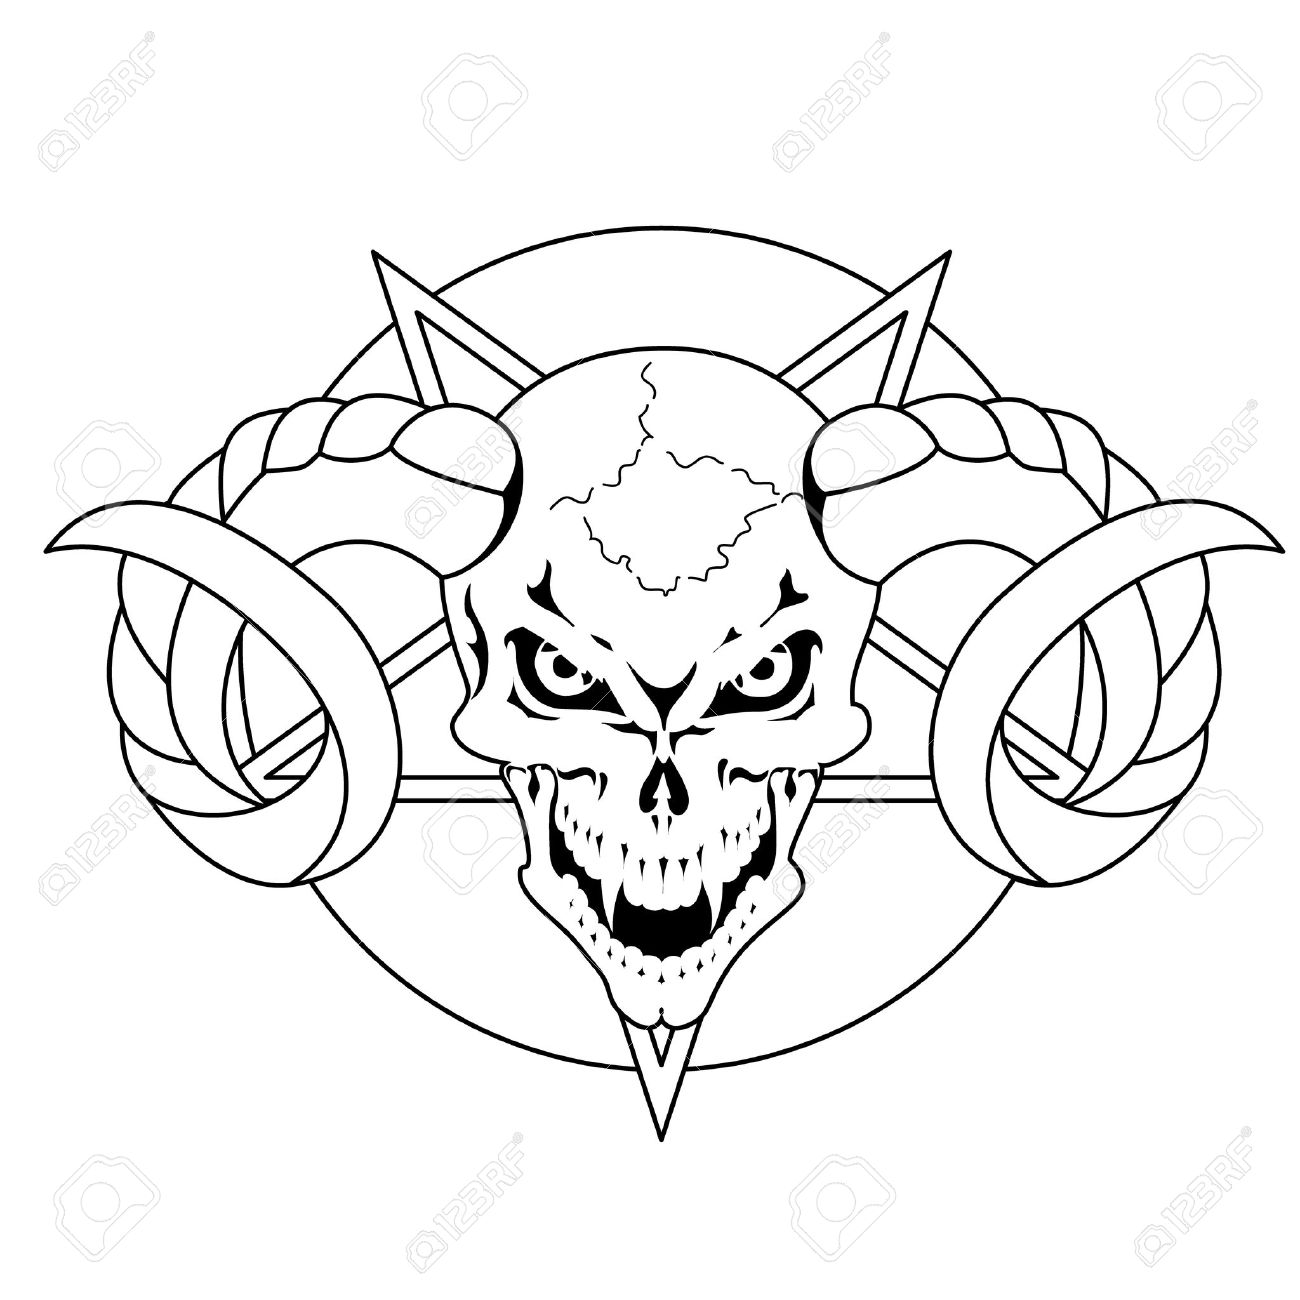 1300x1300 Skull With Horns Pentagram Royalty Free Cliparts, Vectors,